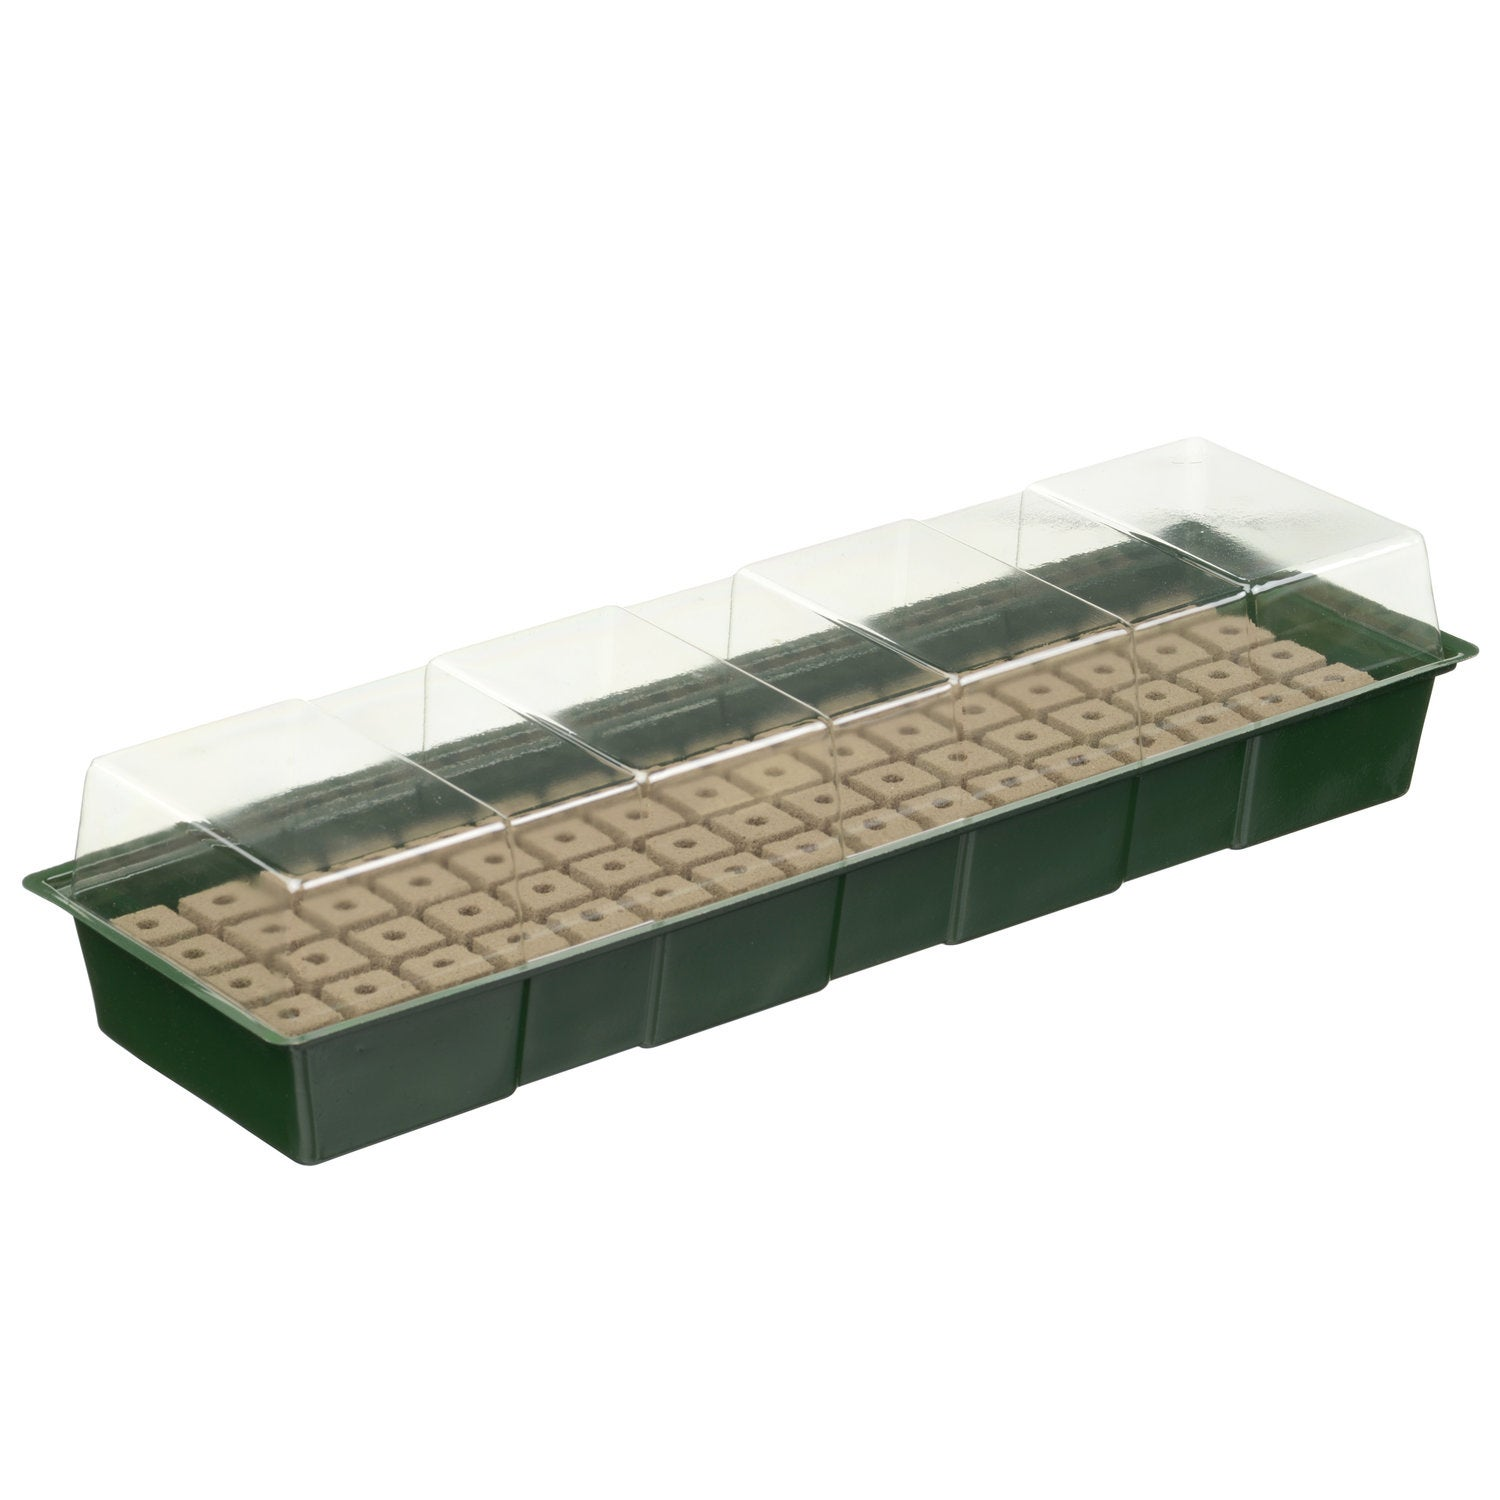 Nature vensterbankkweekset incl. groeimedium 49x15,5x10cm (4x16cellen)